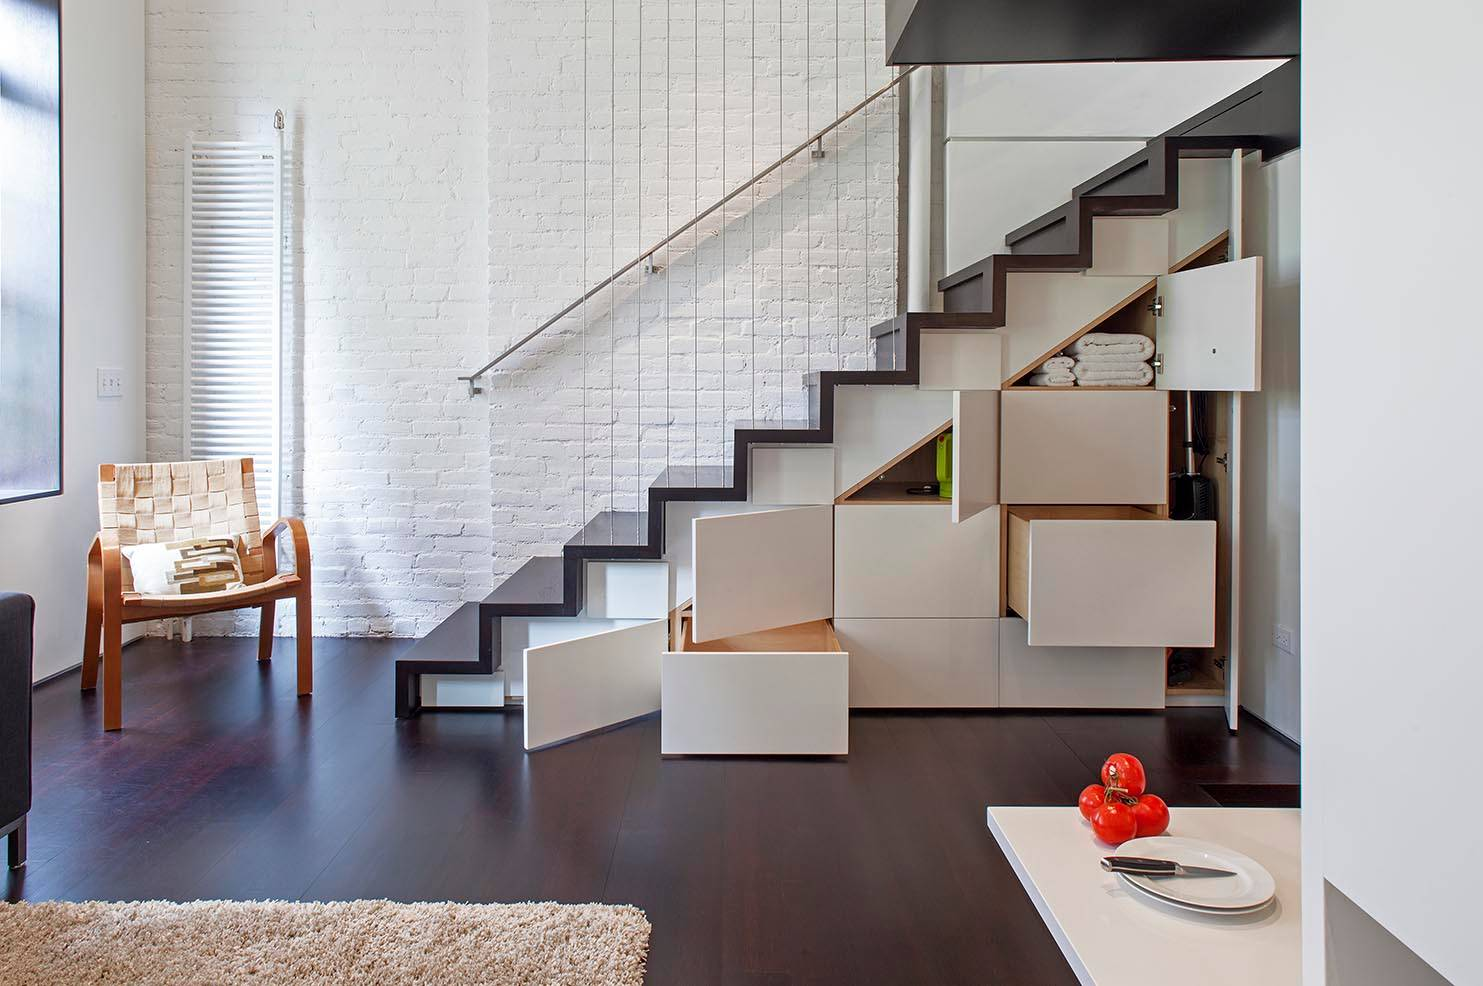 Staircase-with-Storage-Space-Space-Ideas-Modern-Architecture